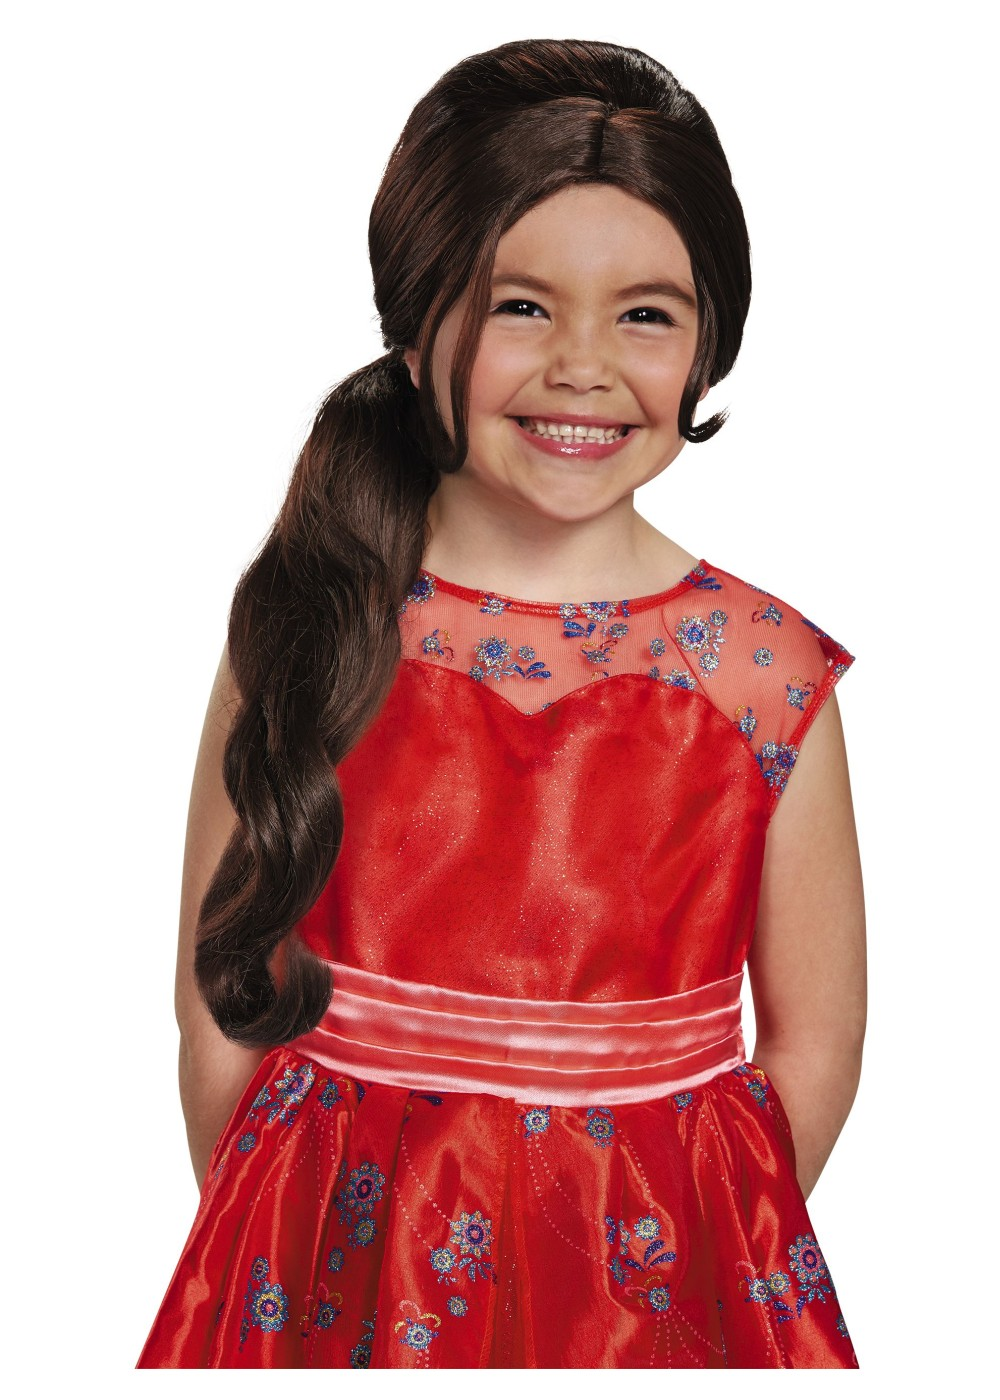 Elena Avalor Disney Princess Wig Accessory on food of the 1950s